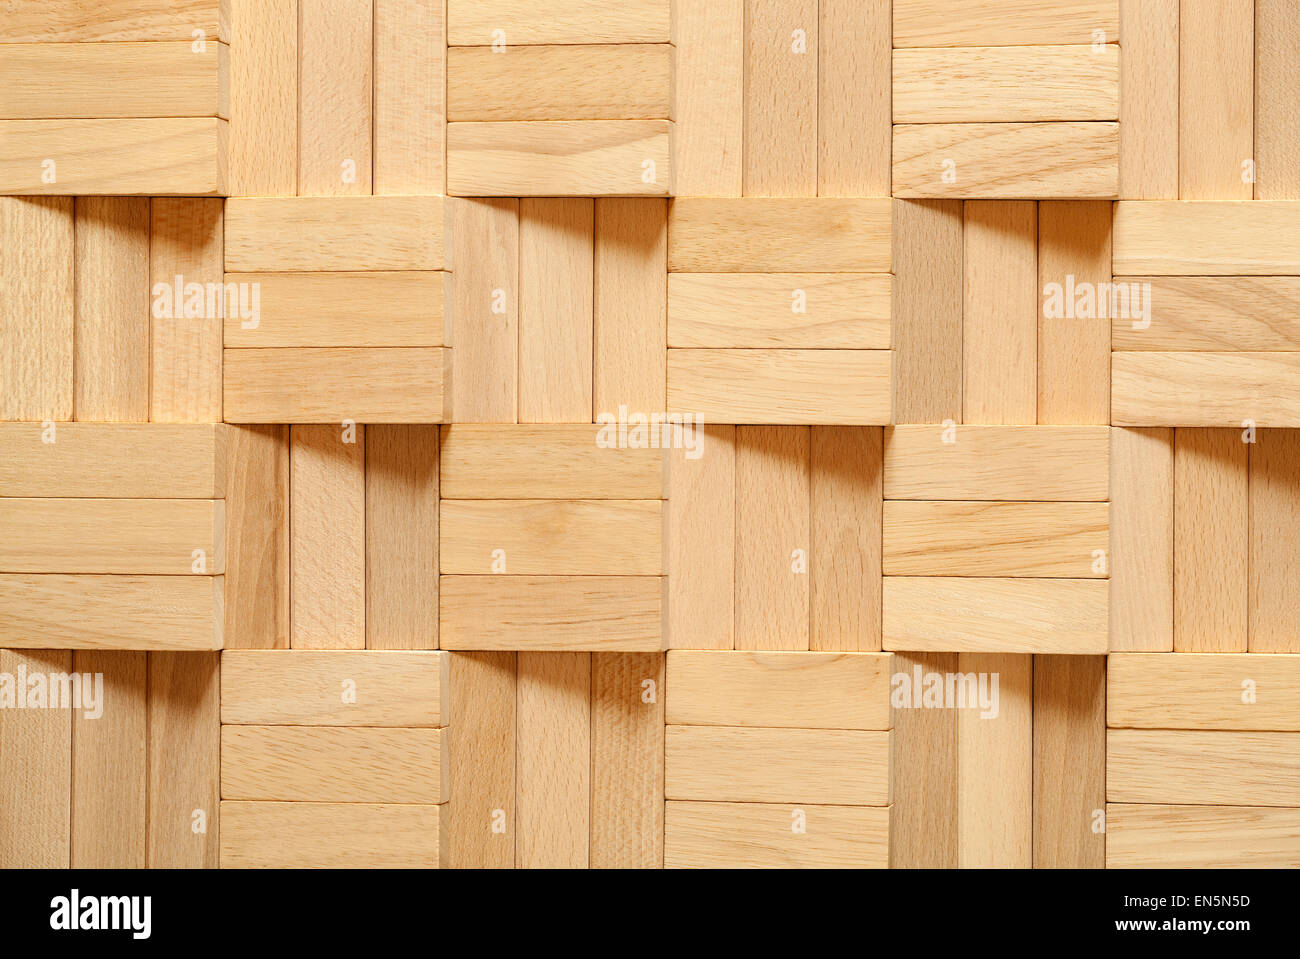 pattern arranged from blocks as background - Stock Image